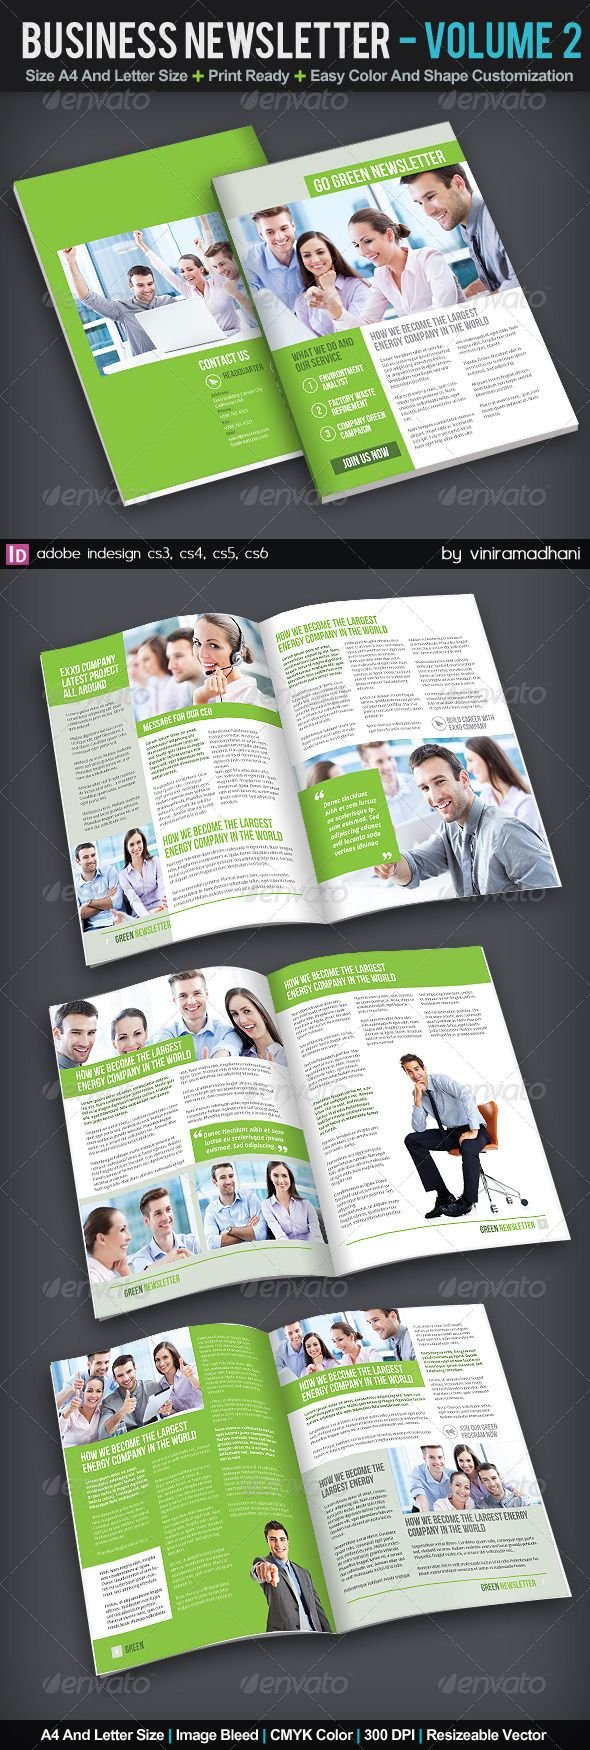 Doc580387 Simple Annual Report Template Simple Annual Report – Simple Annual Report Template